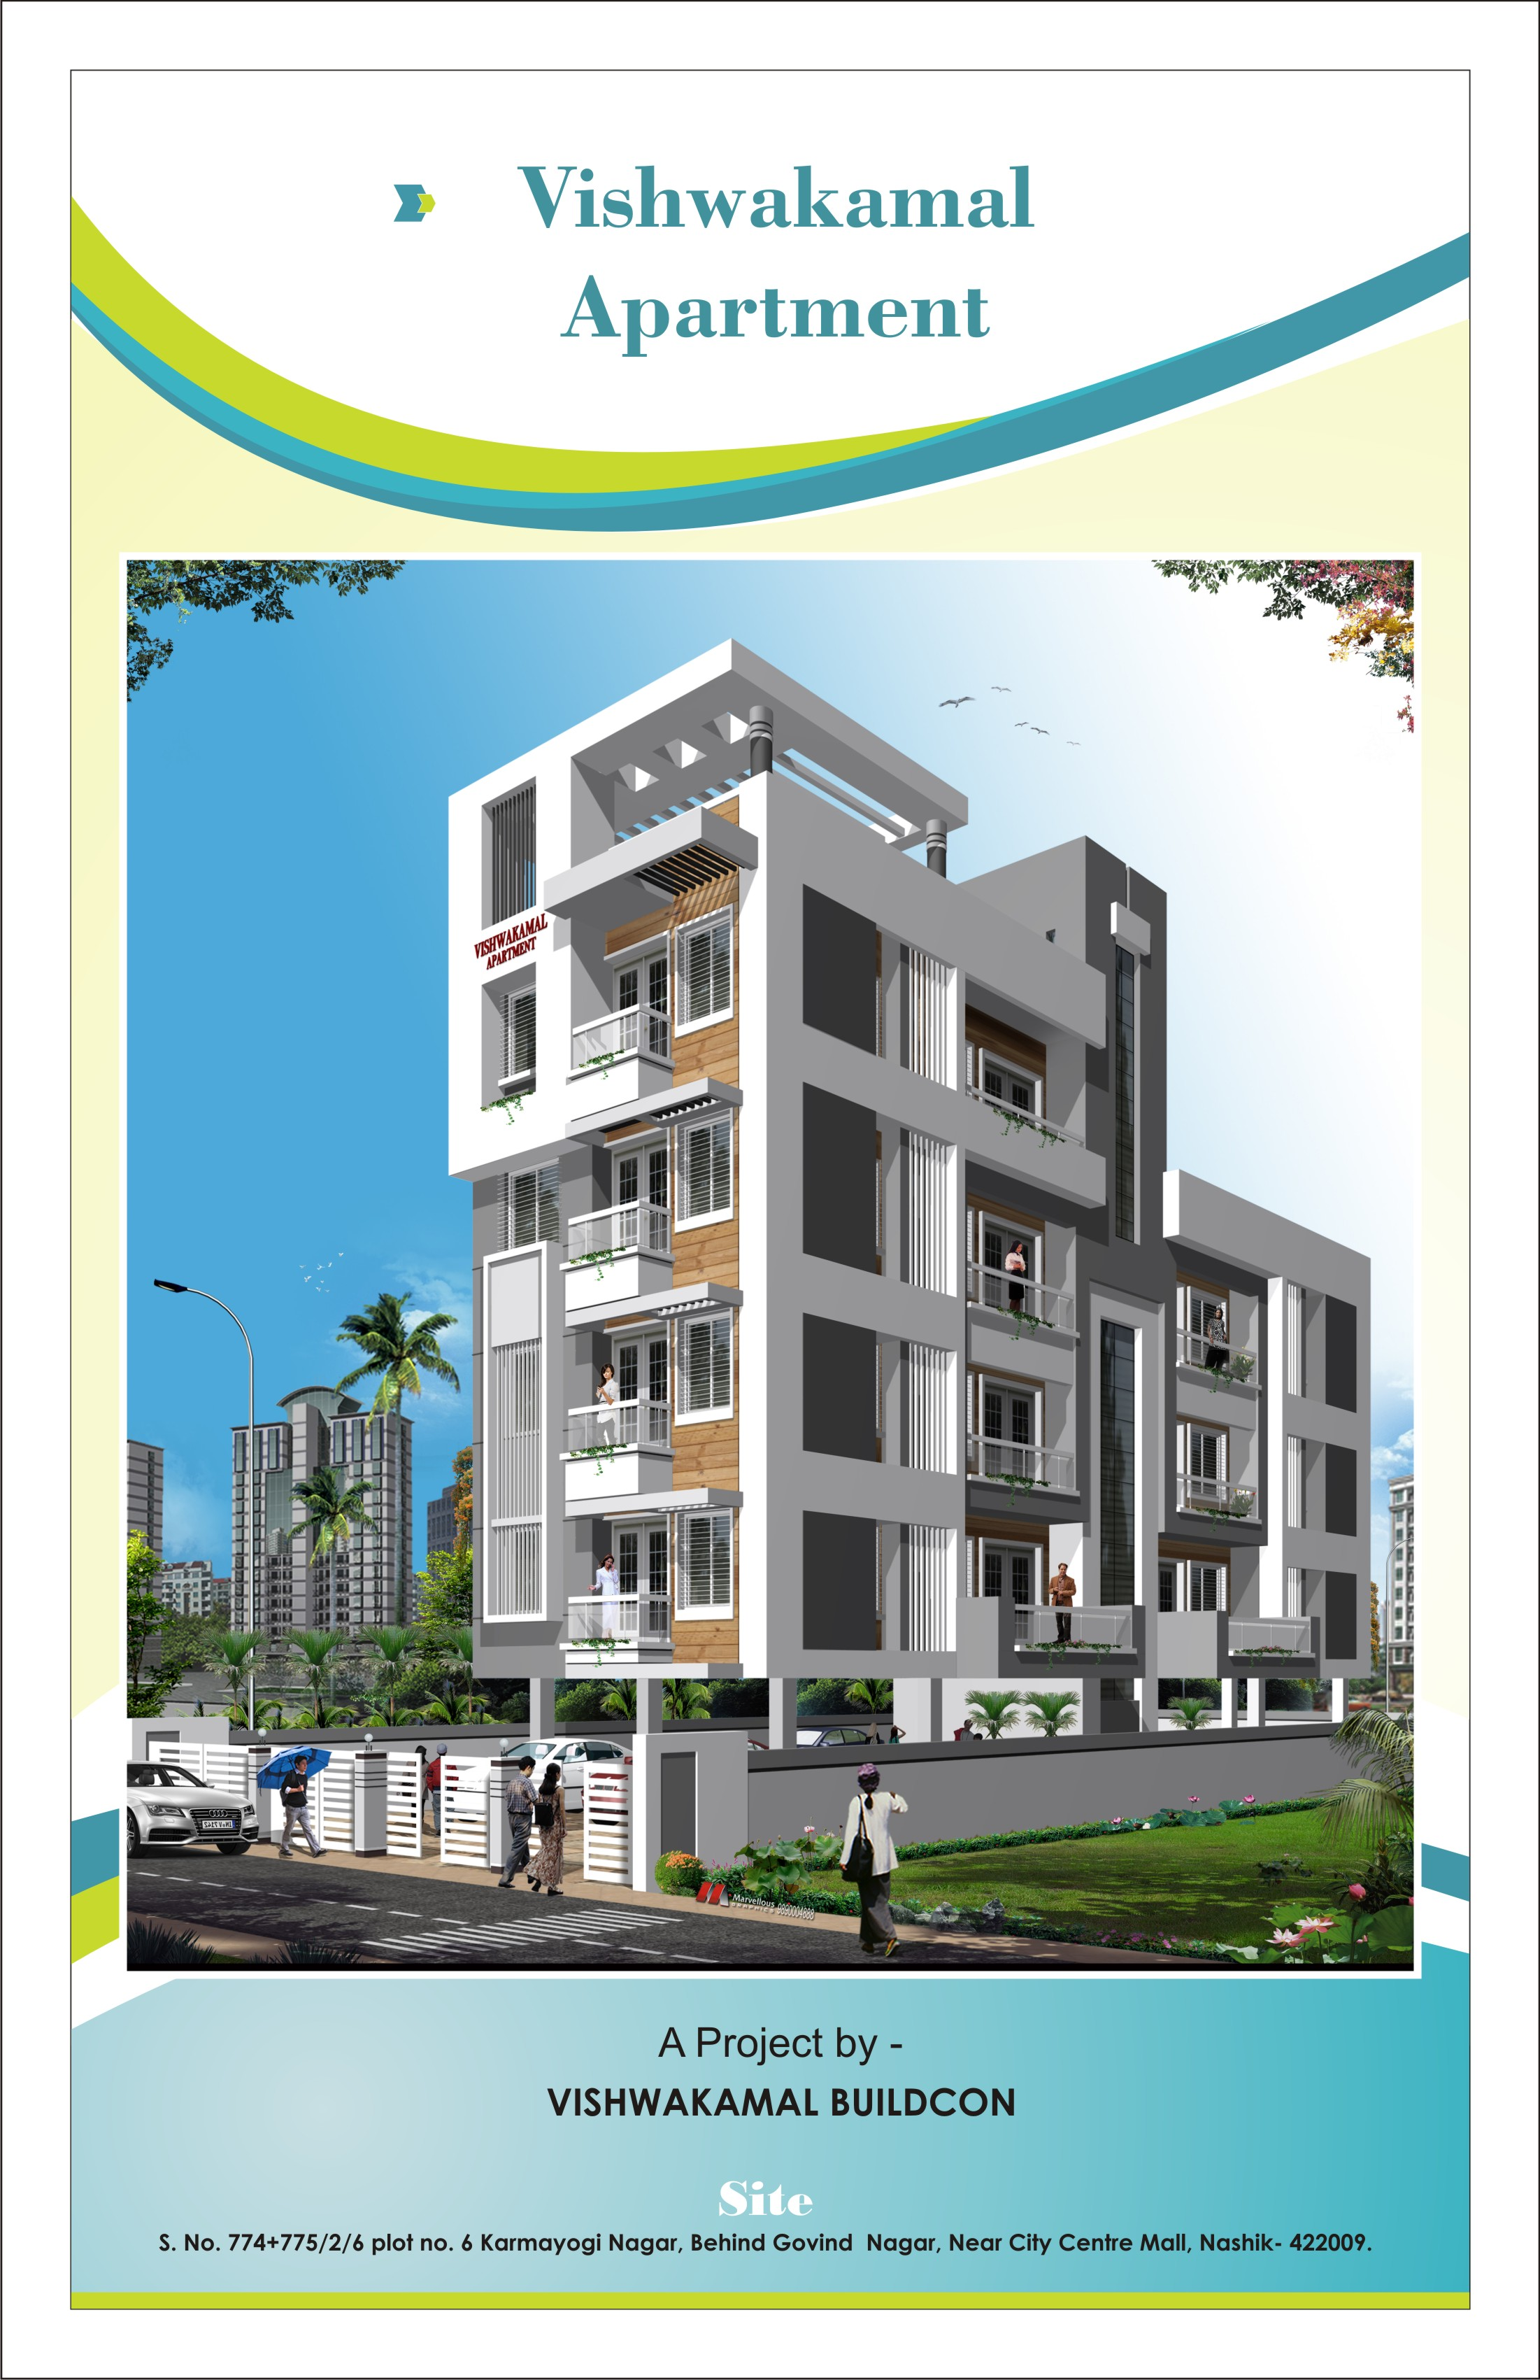 Penthouse in Nashik  3,4,5 BHK Flats/Apartments in Nashik